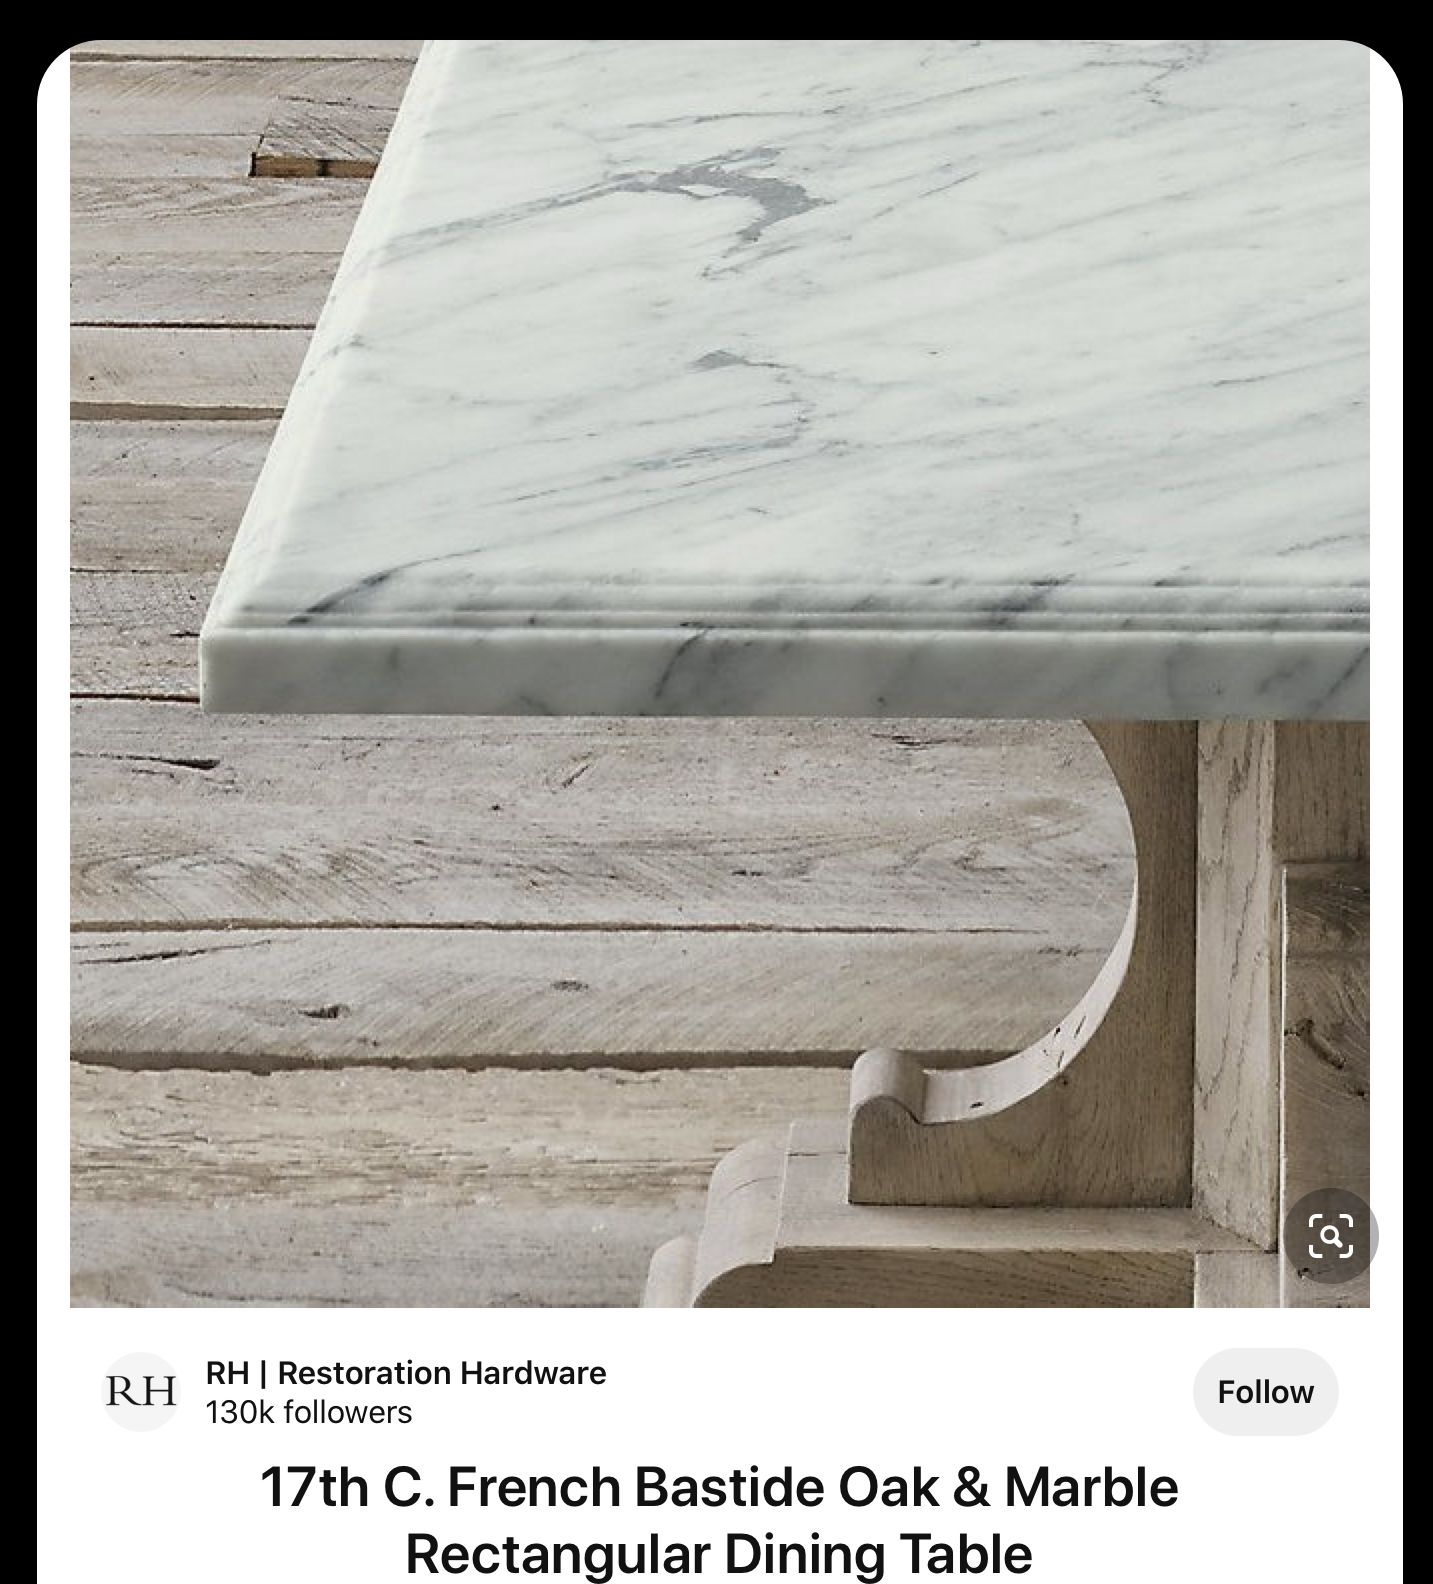 Pin By The Lakehouse On Stone Edge Master Bathroom Rectangular Dining Table Dining Table Handcrafted Dining Table